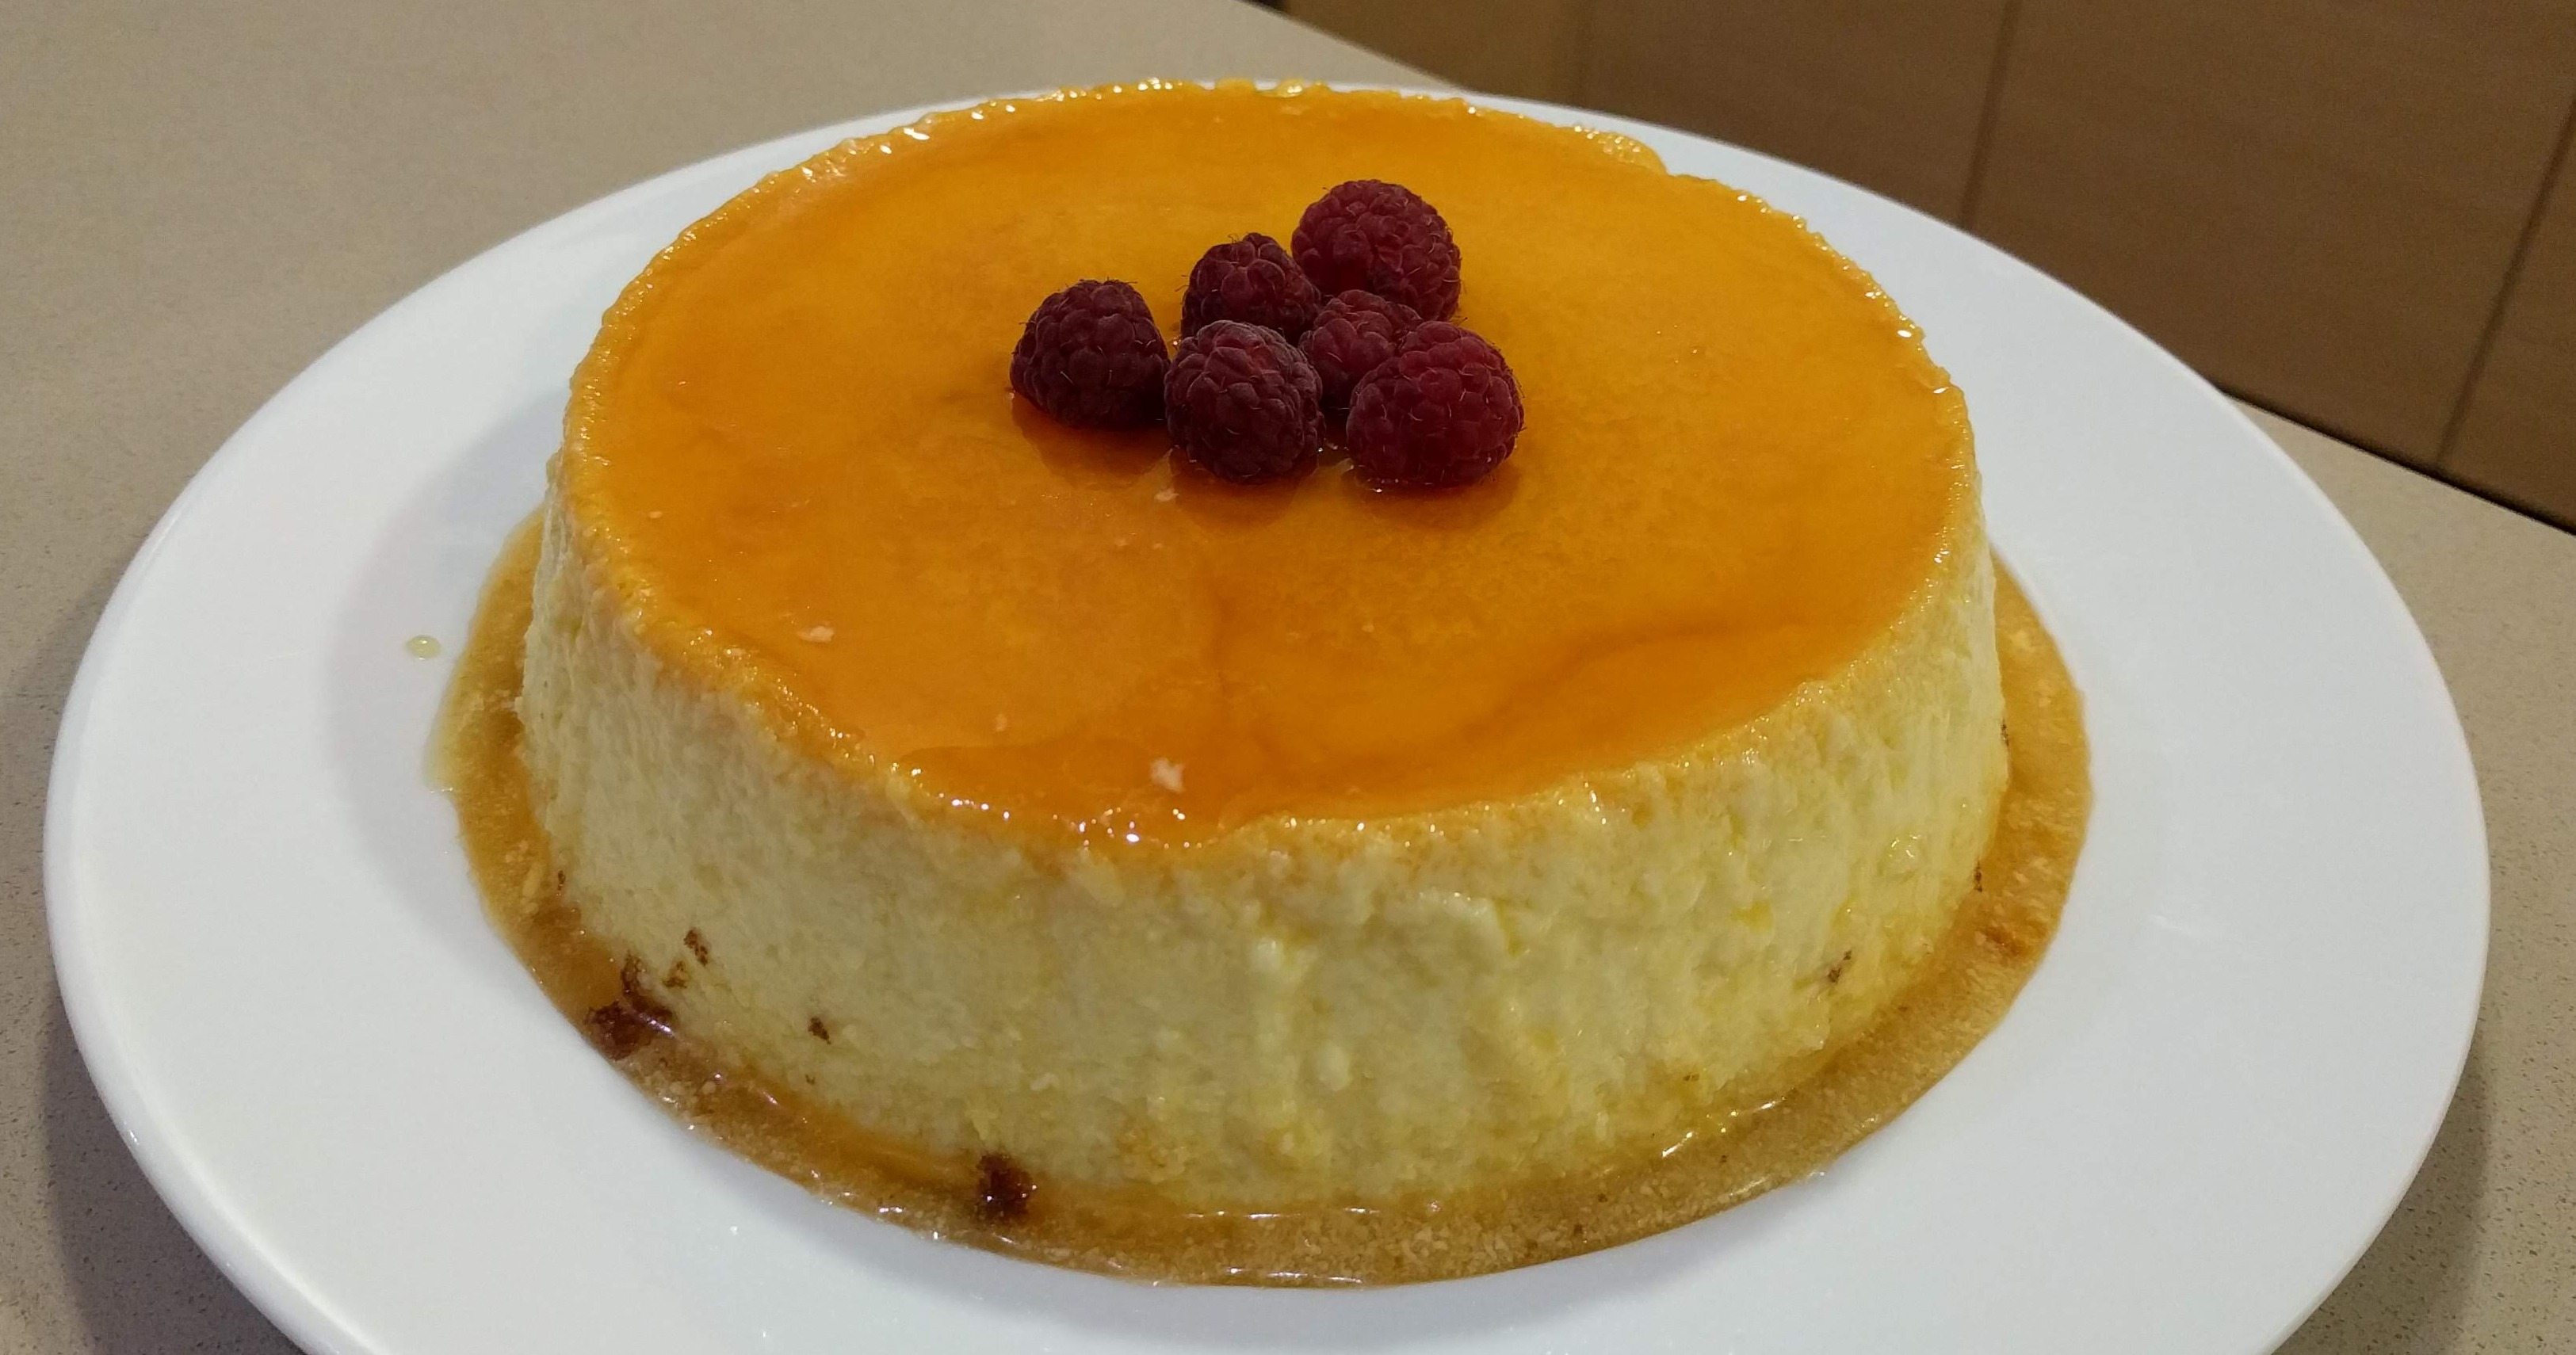 Spanische Küche Crema Catalana Learn How To Make Some Easy European Desserts Flex Baking Class Small Online Class For Ages 12 17 Outschool